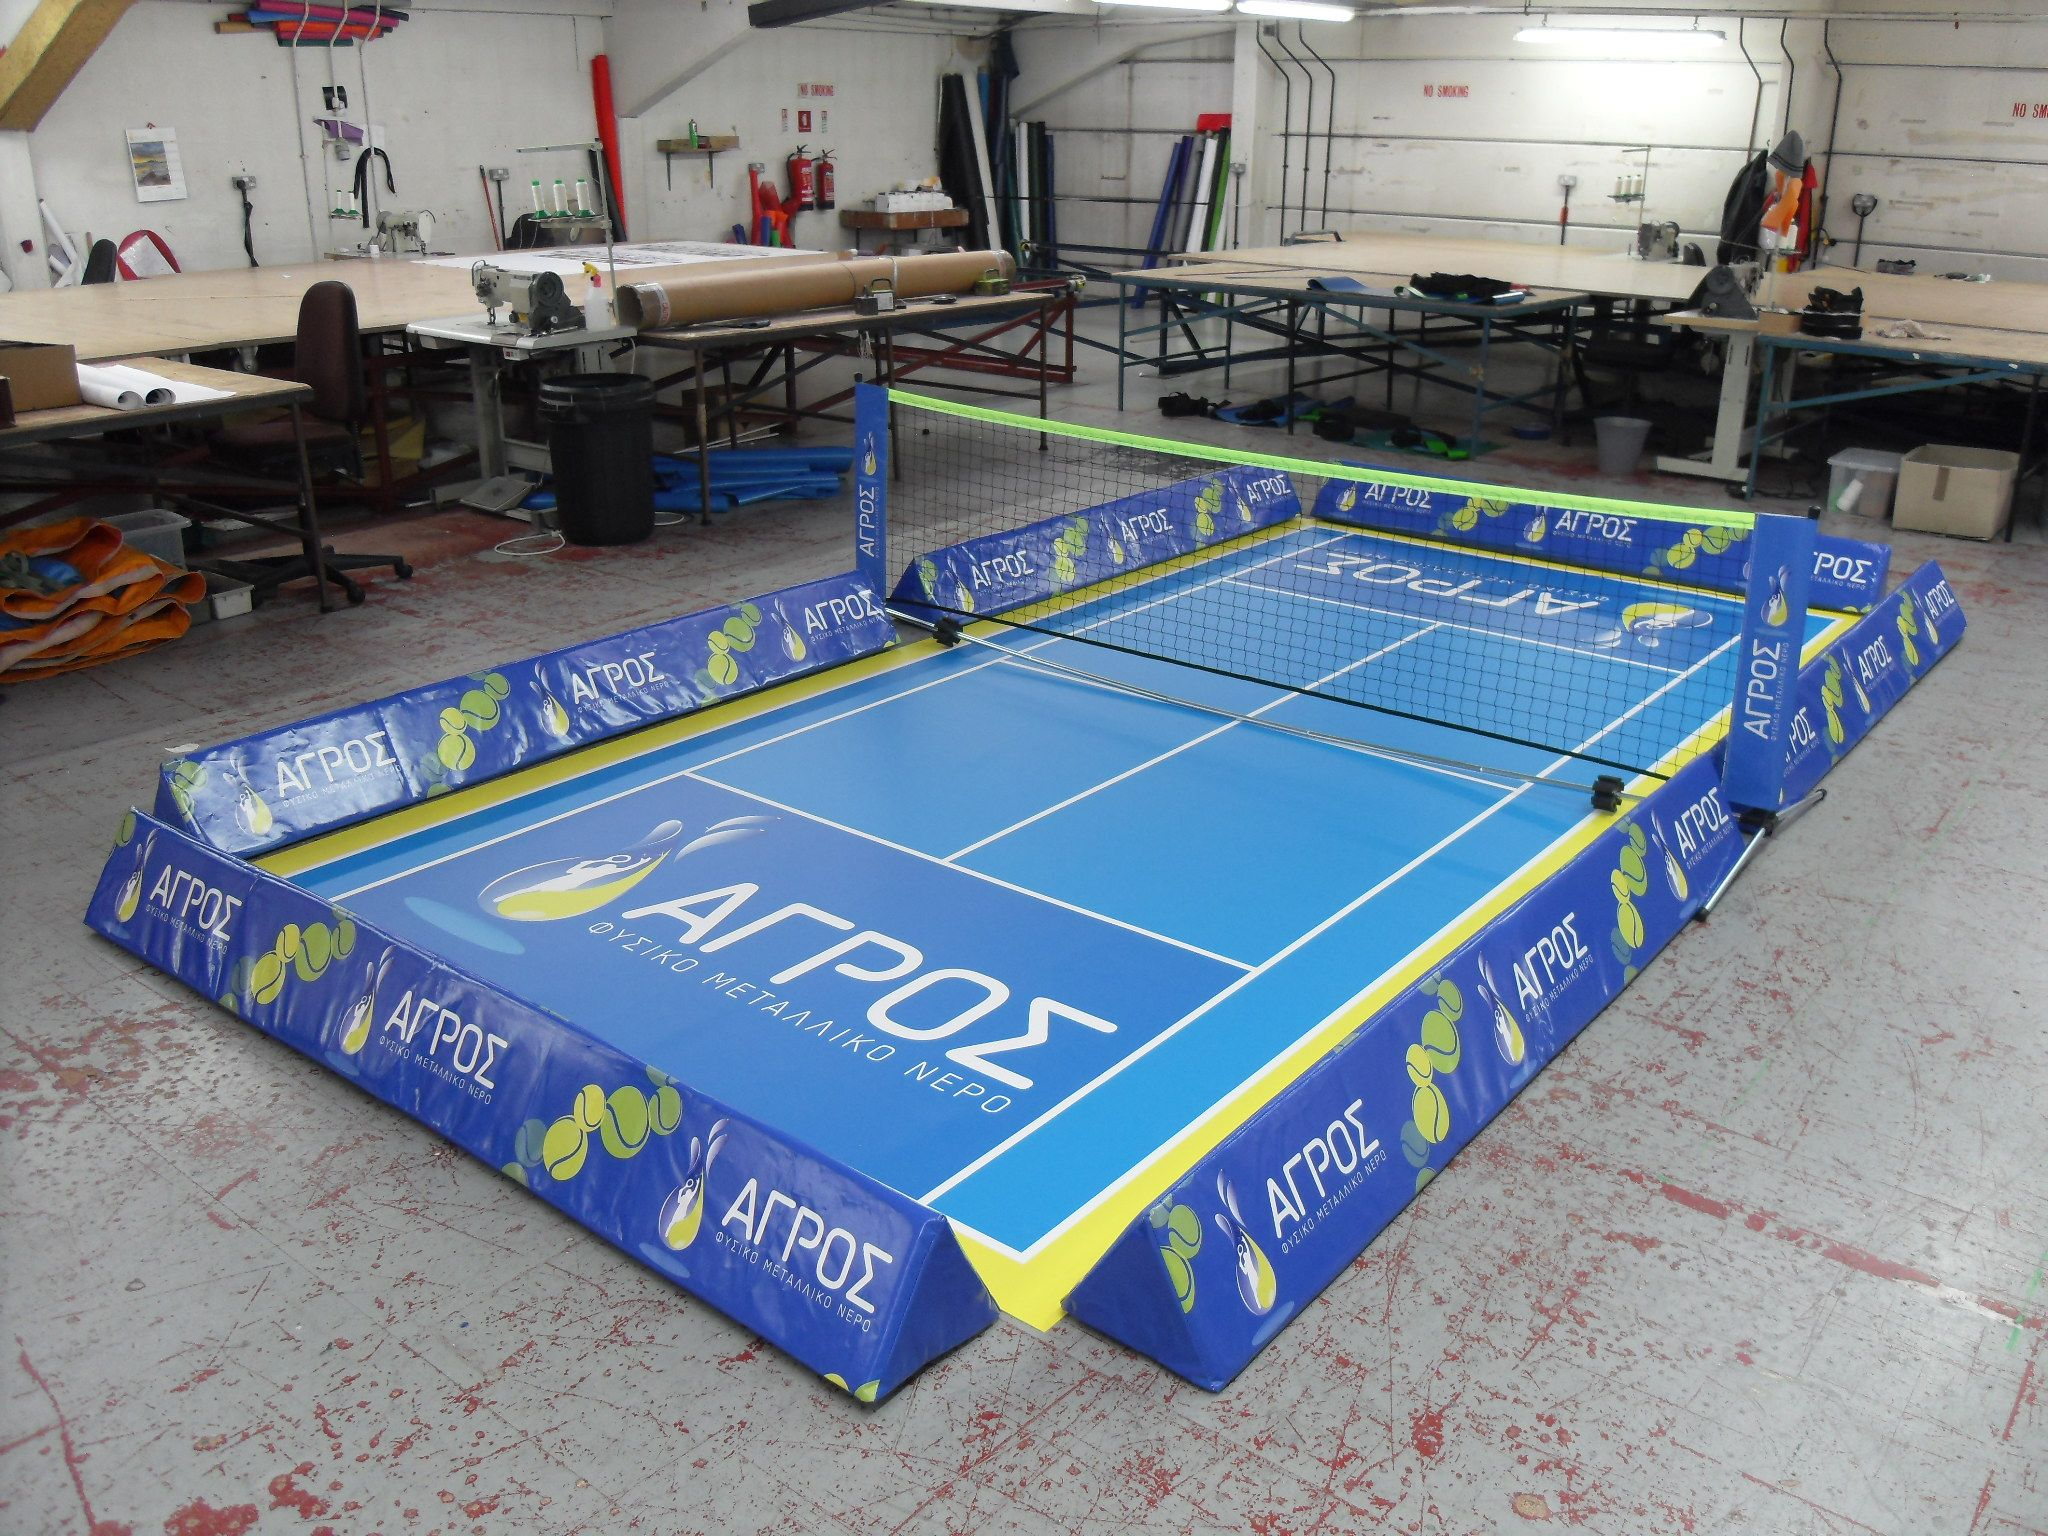 Branded Mini Tennis Court Really Get Into The Spirit Of Wimbledon With Your Own Bespoke Mini Tennis Court Floor Barr Backyard Sports British Sports Sports Mini backyard tennis court